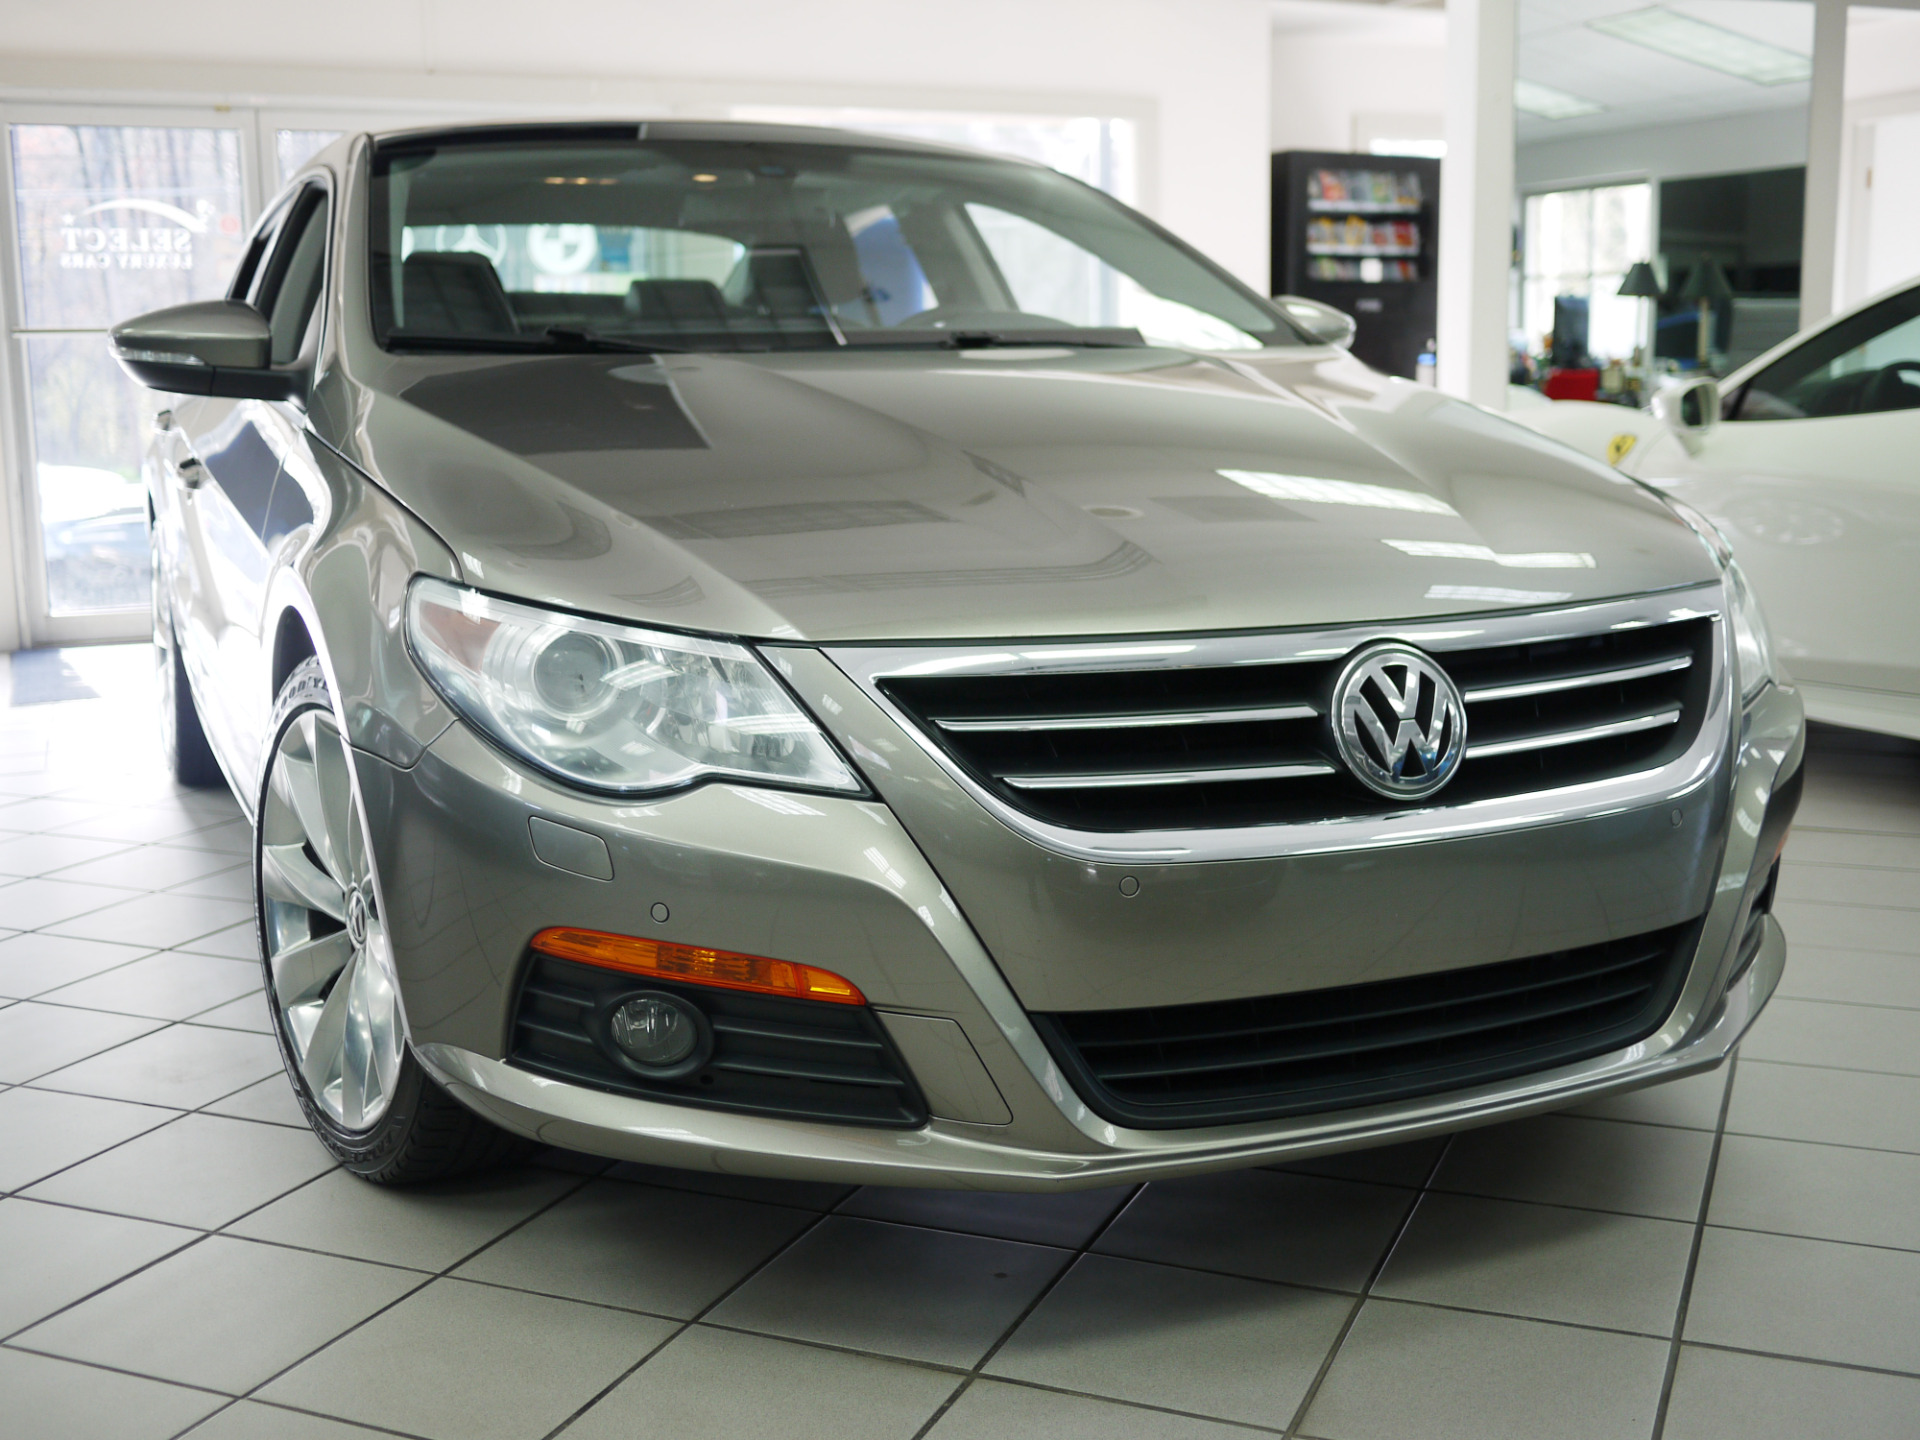 used 2012 volkswagen cc vr6 executive marietta ga. Black Bedroom Furniture Sets. Home Design Ideas